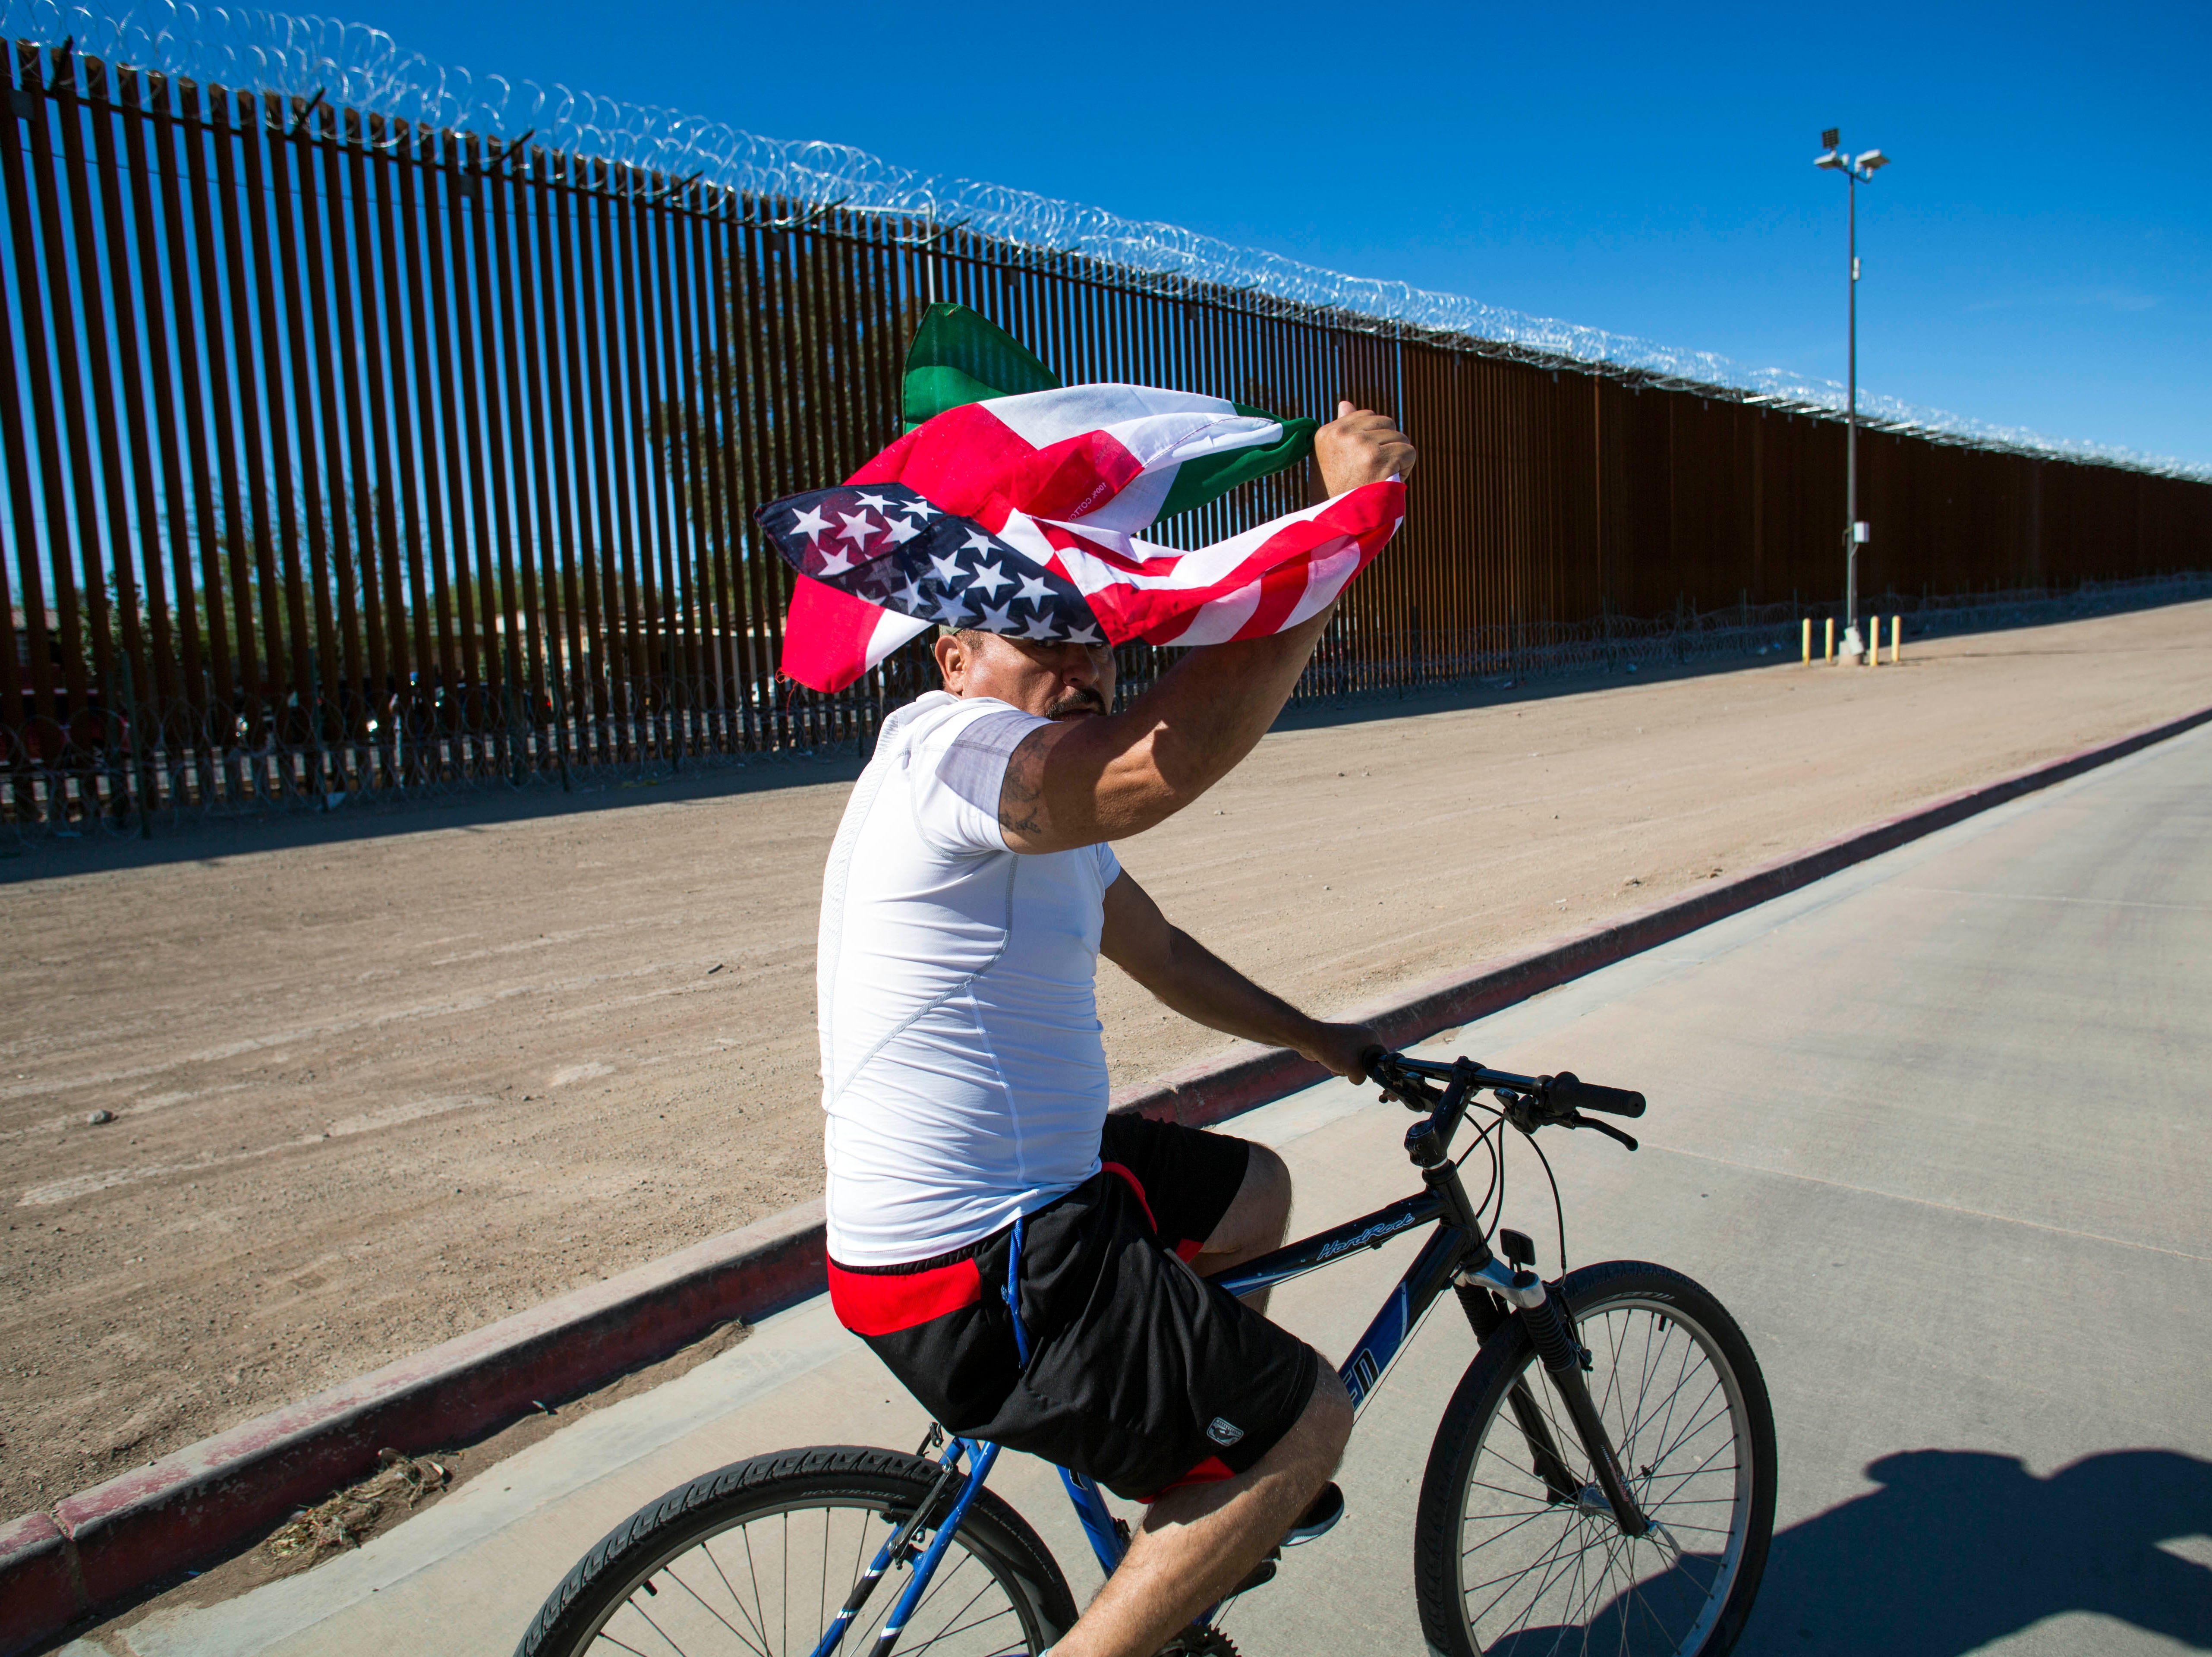 A man holding a U.S. and Mexican flags rides his bikes a few feet from the wall separating Mexico and the U.S. during the Binational March of Unity in Calexico, Calif. The march was organized by as a response to President Donald Trump's visit to the border town. The march of over 100 people was composed of members from Mexicali, Mexico and Calexico, California.